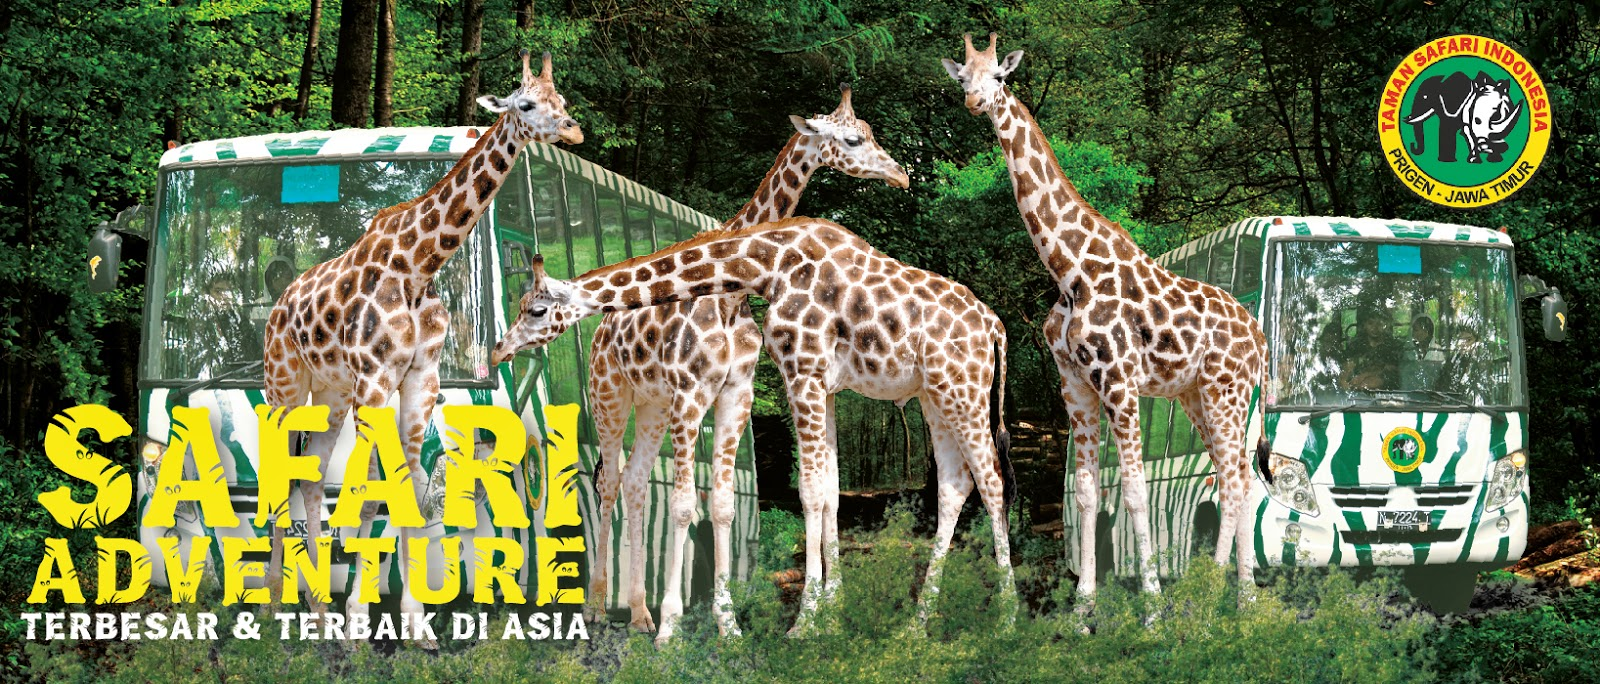 Taman Safari Prigen Study Tour Bp 4 Tips Trik Indonesia